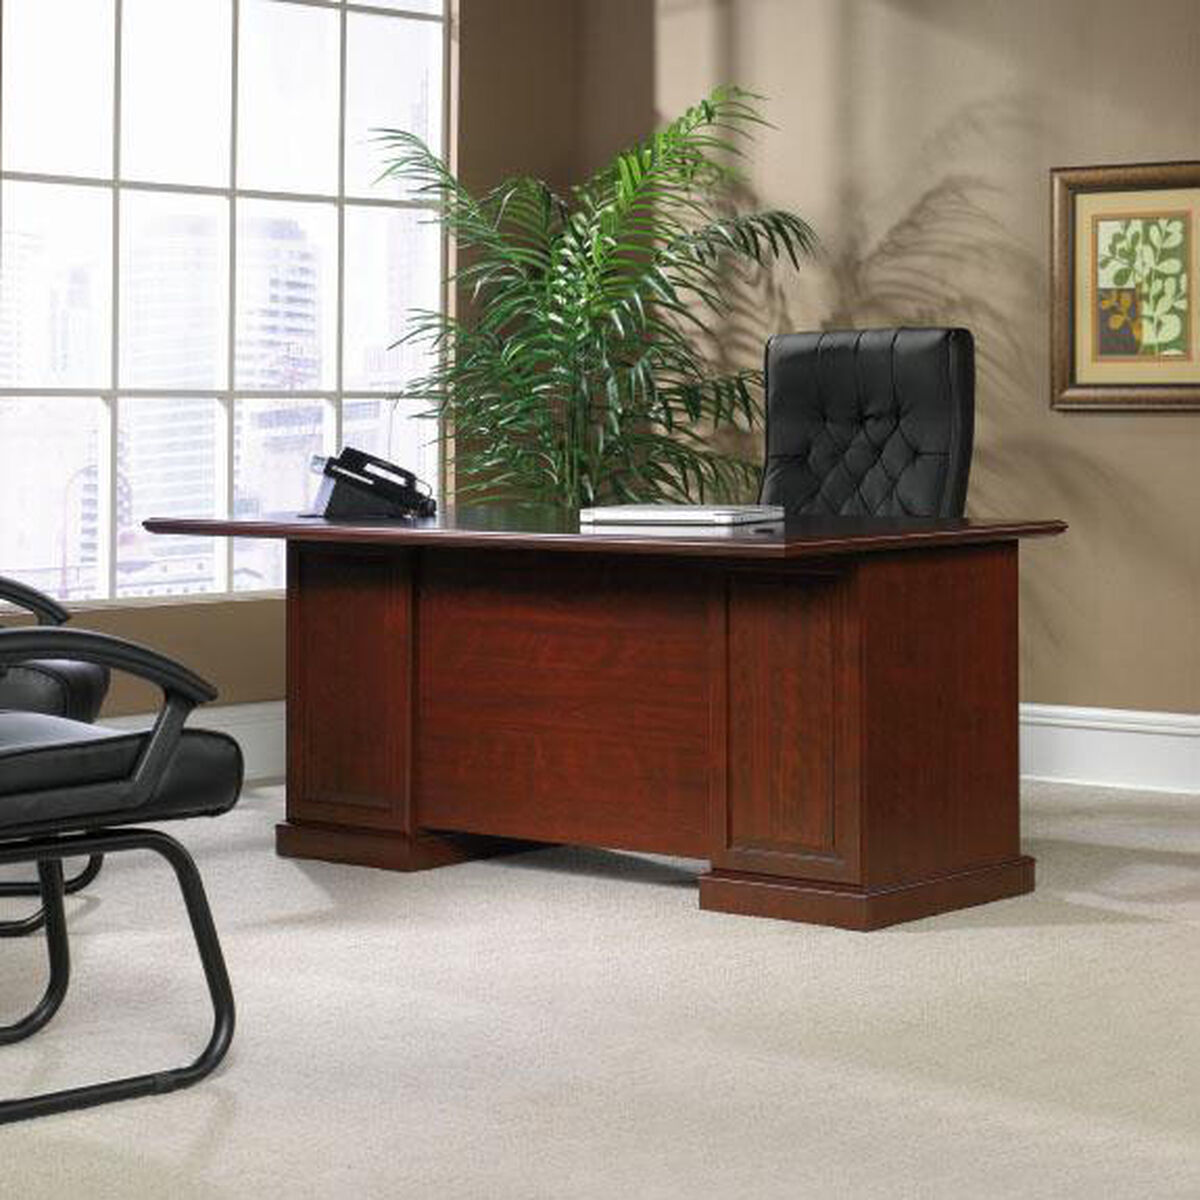 Our Heritage Hill 70 5 W Executive Desk With Locking Drawers Classic Cherry Is